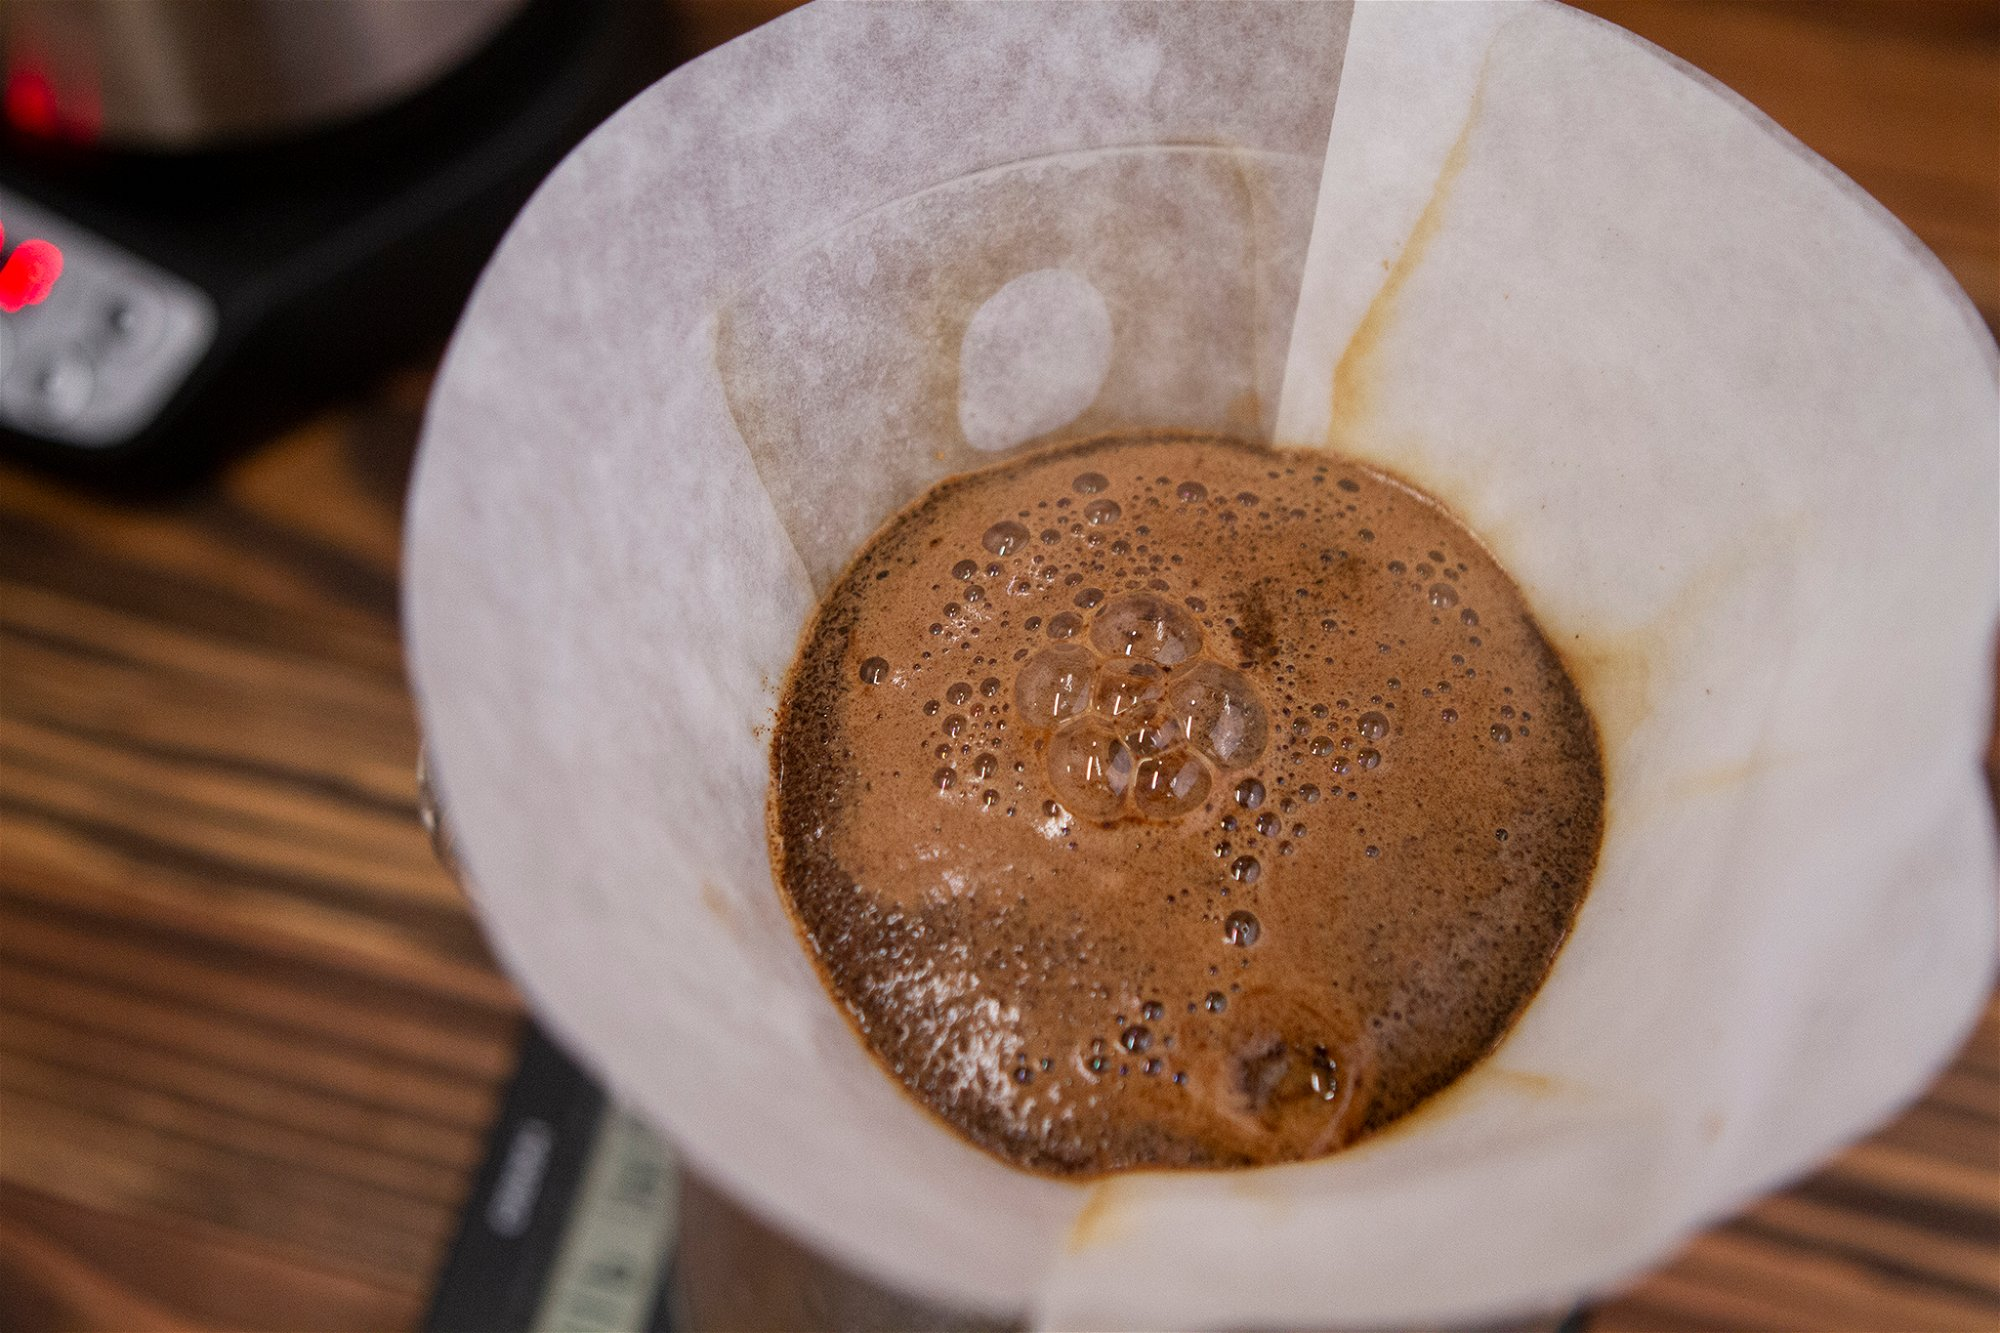 SATURATED COFFEE GROUNDS IN CHEMEX